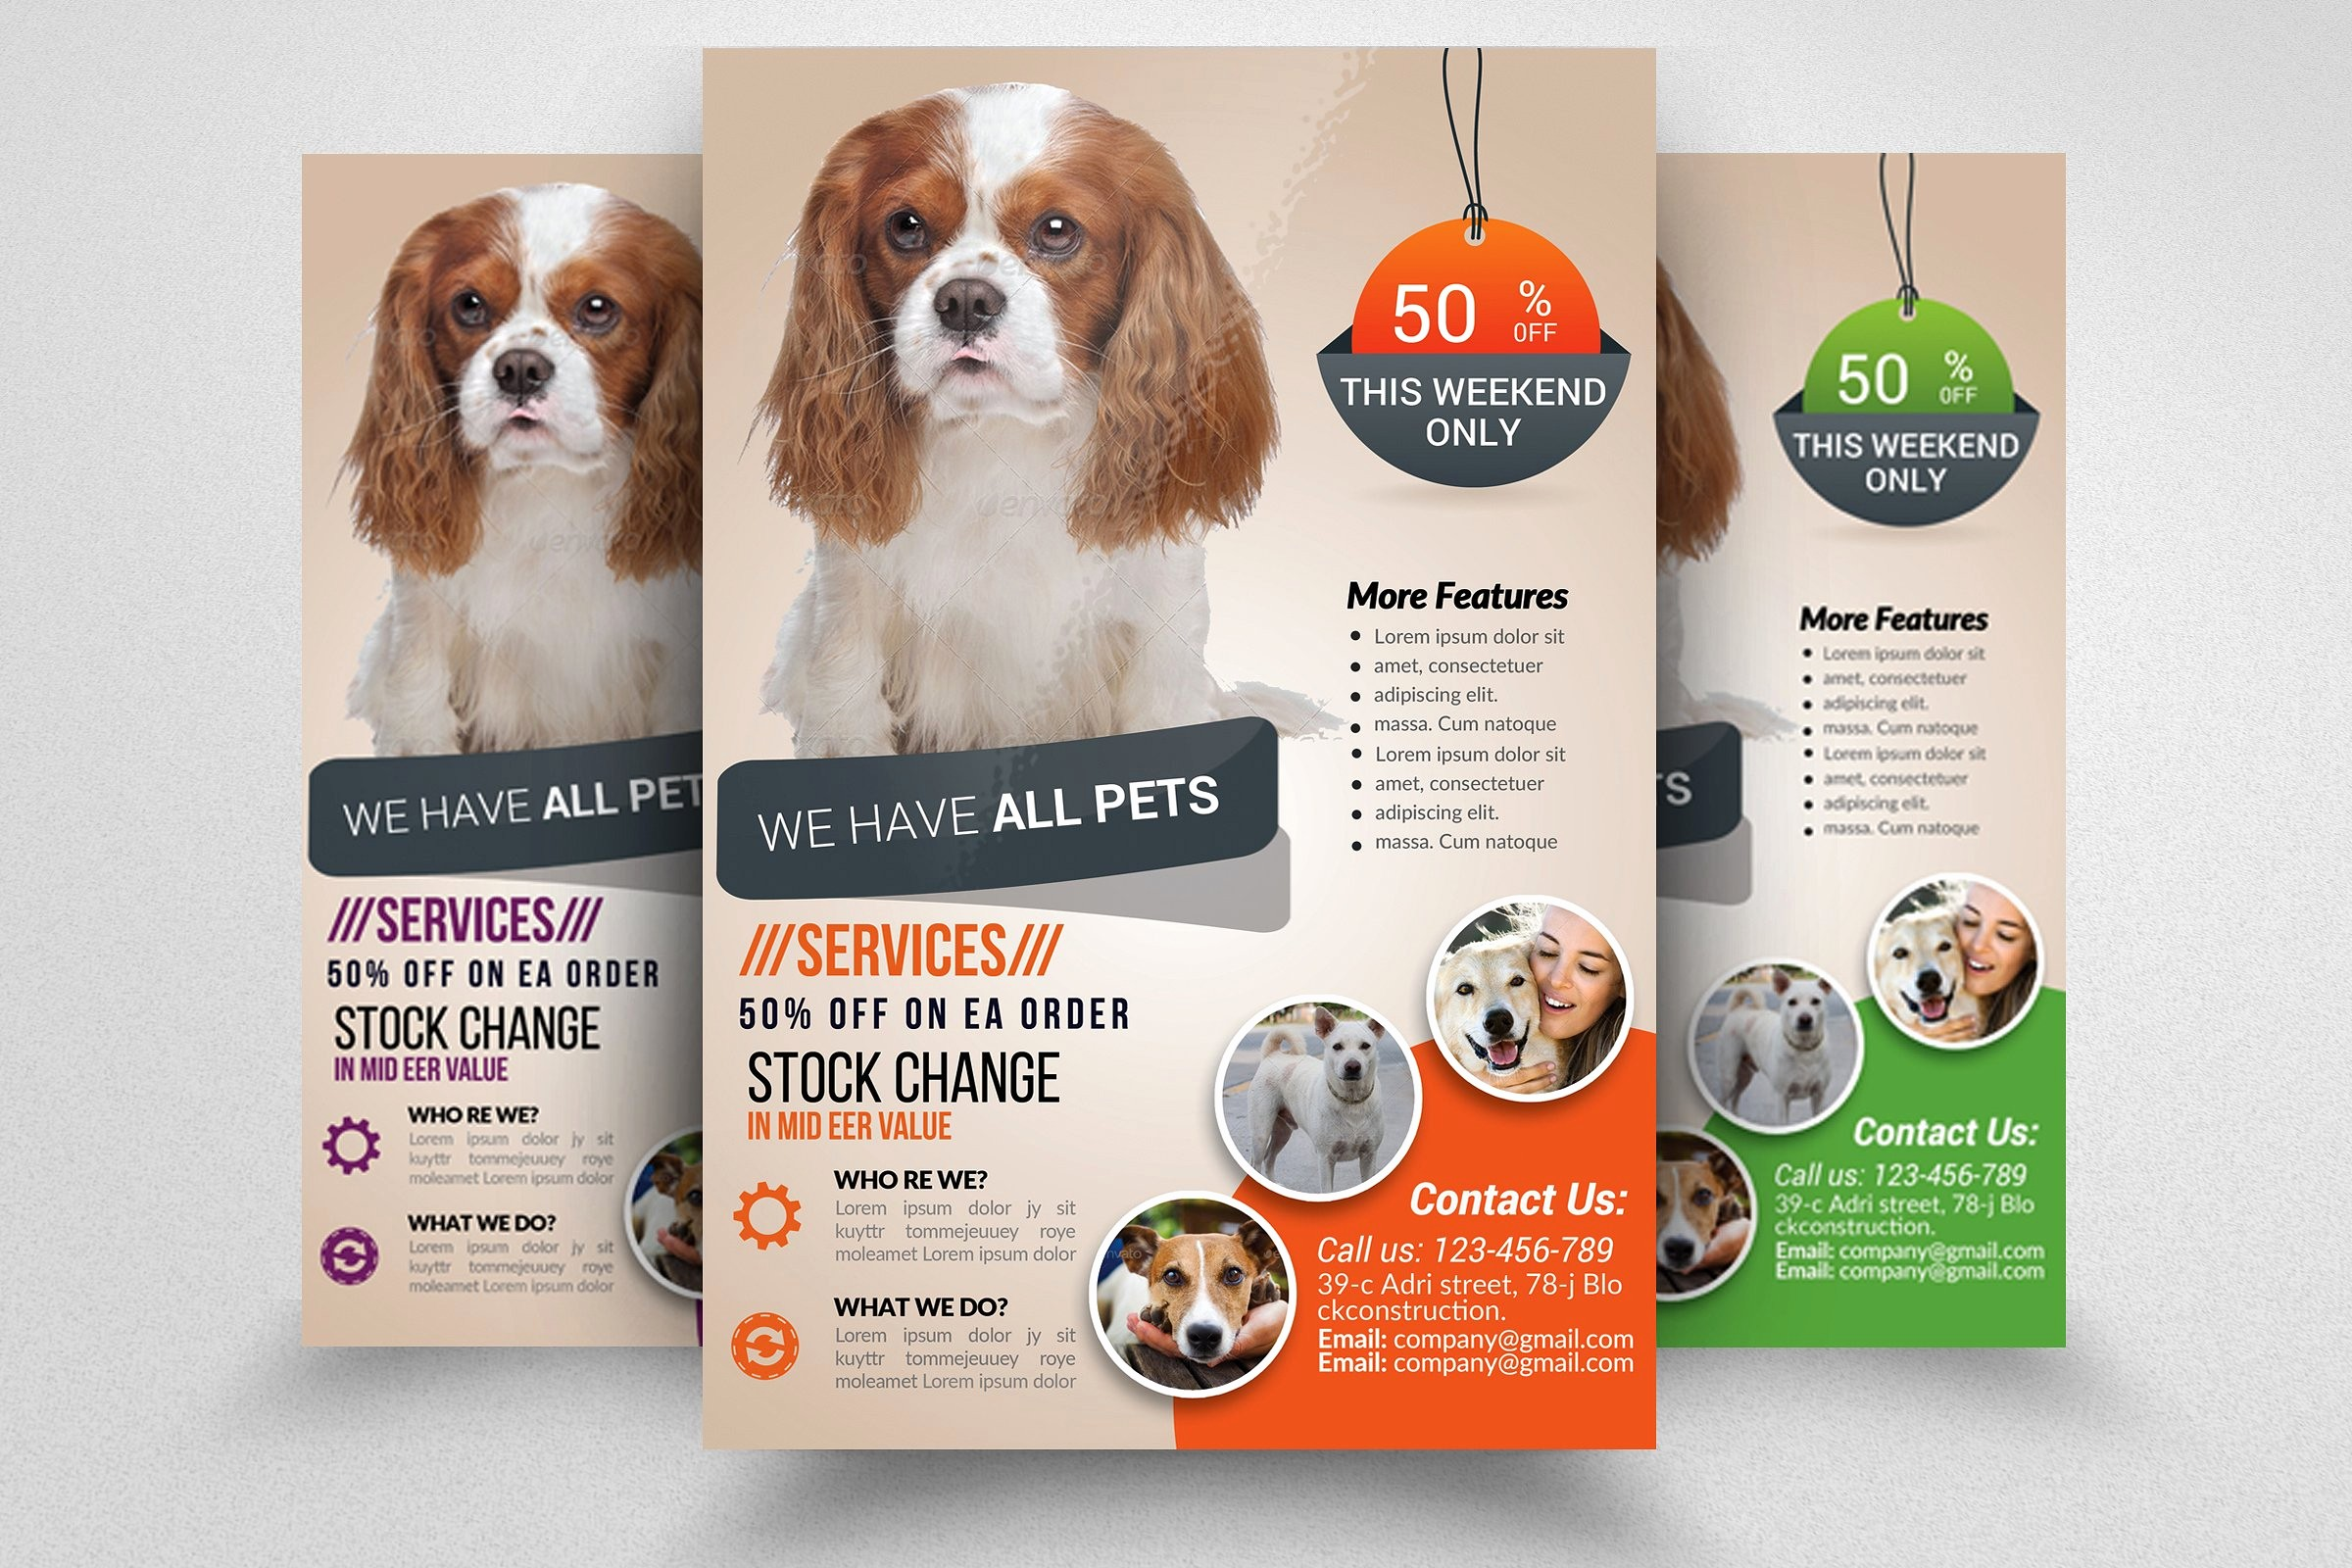 Puppy for Sale Flyer Templates Lovely Pet Shop Business Flyer Template Flyer Templates